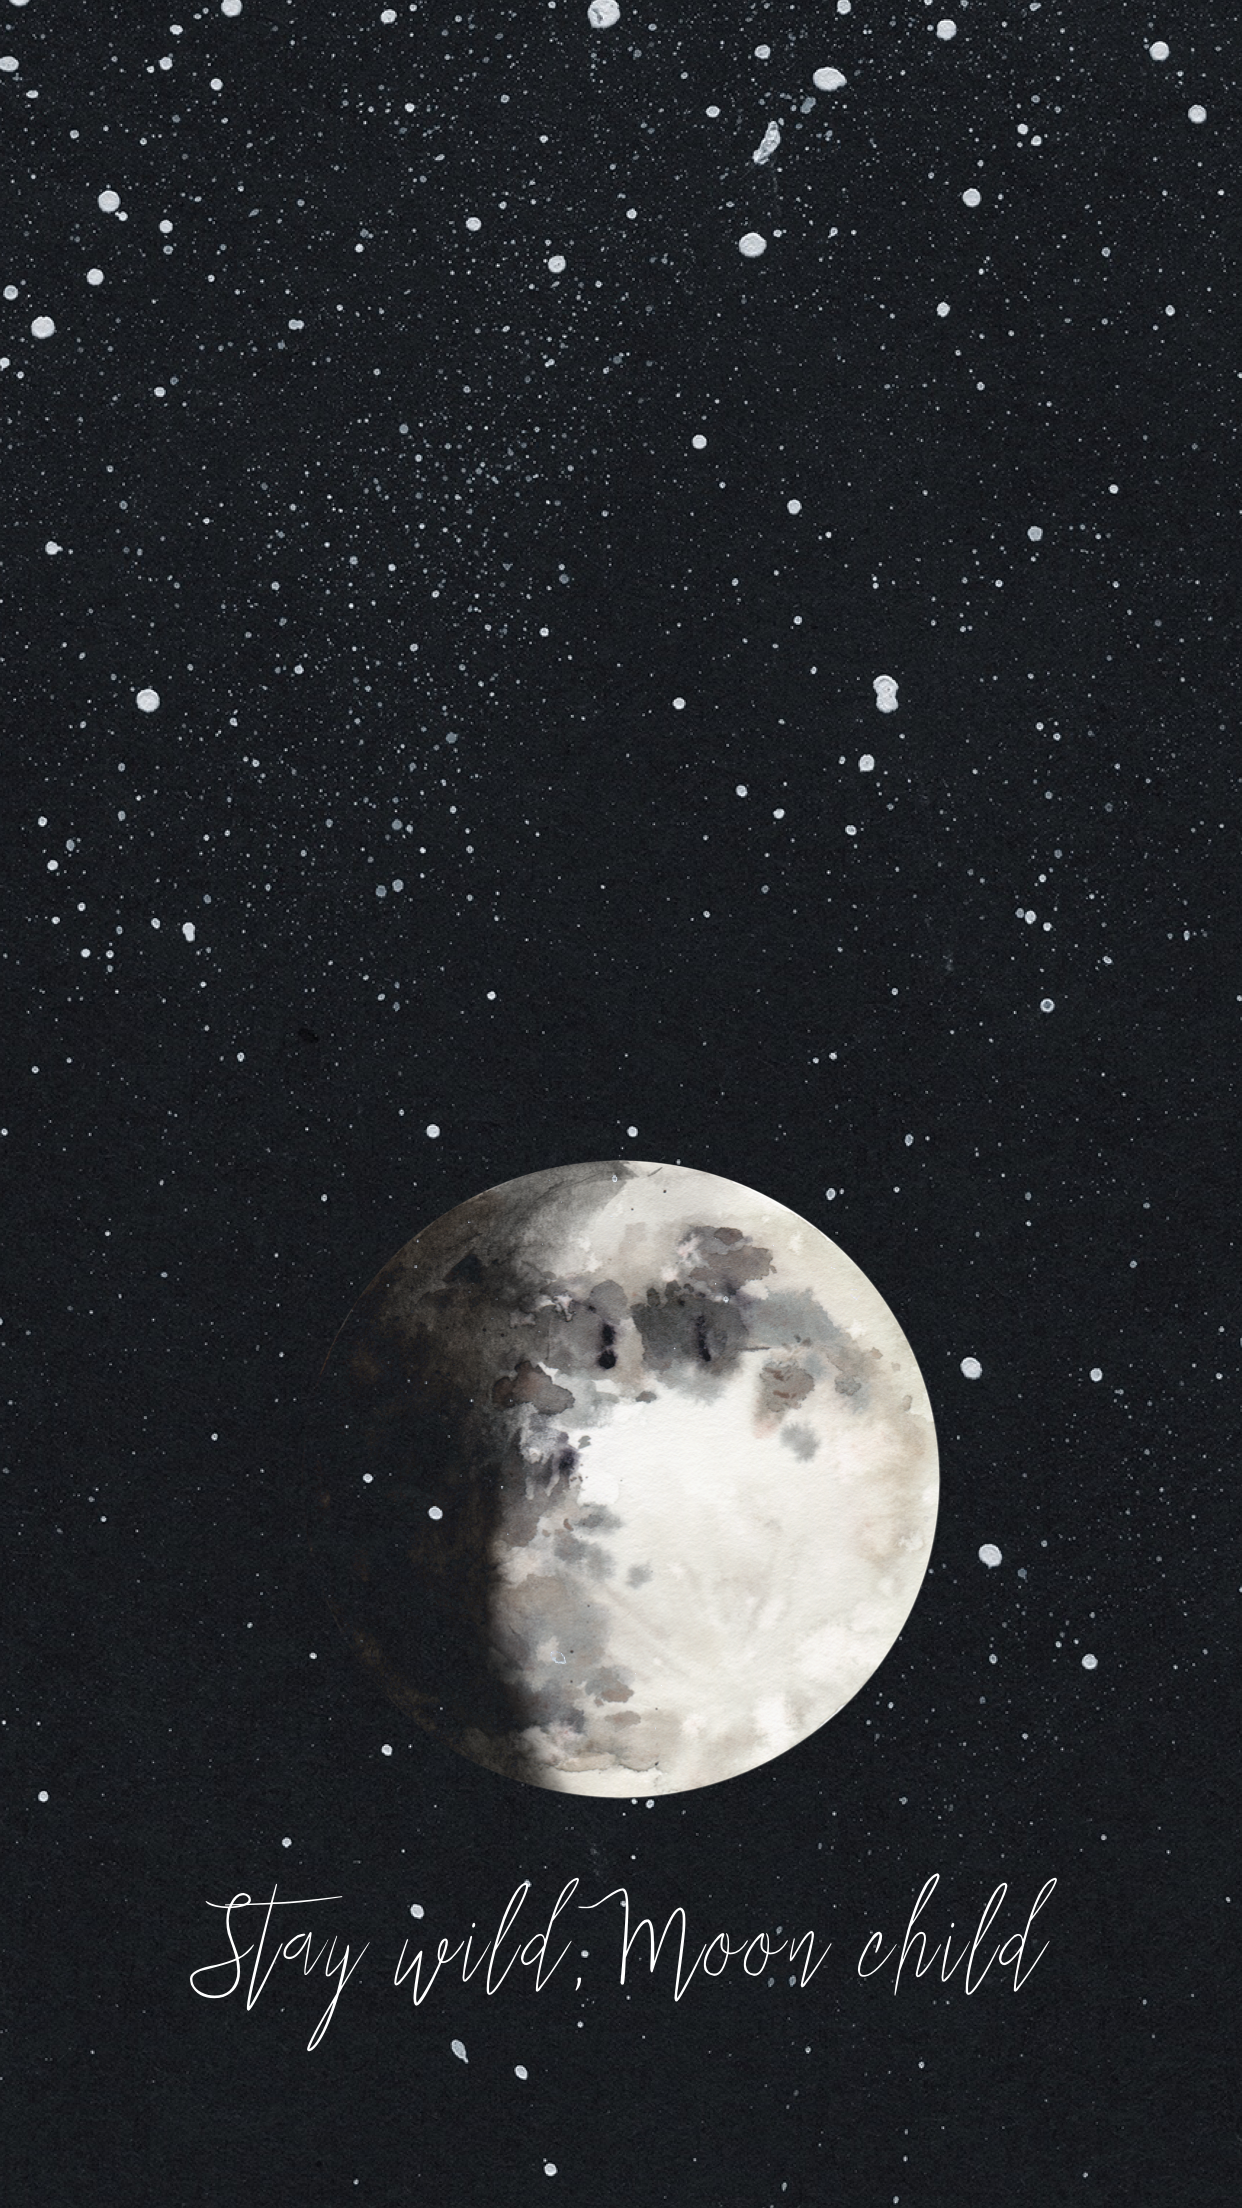 Pin By Maypa On W A L L P A P E R S In 2020 Witchy Wallpaper Iphone Wallpaper Moon Spiritual Wallpaper